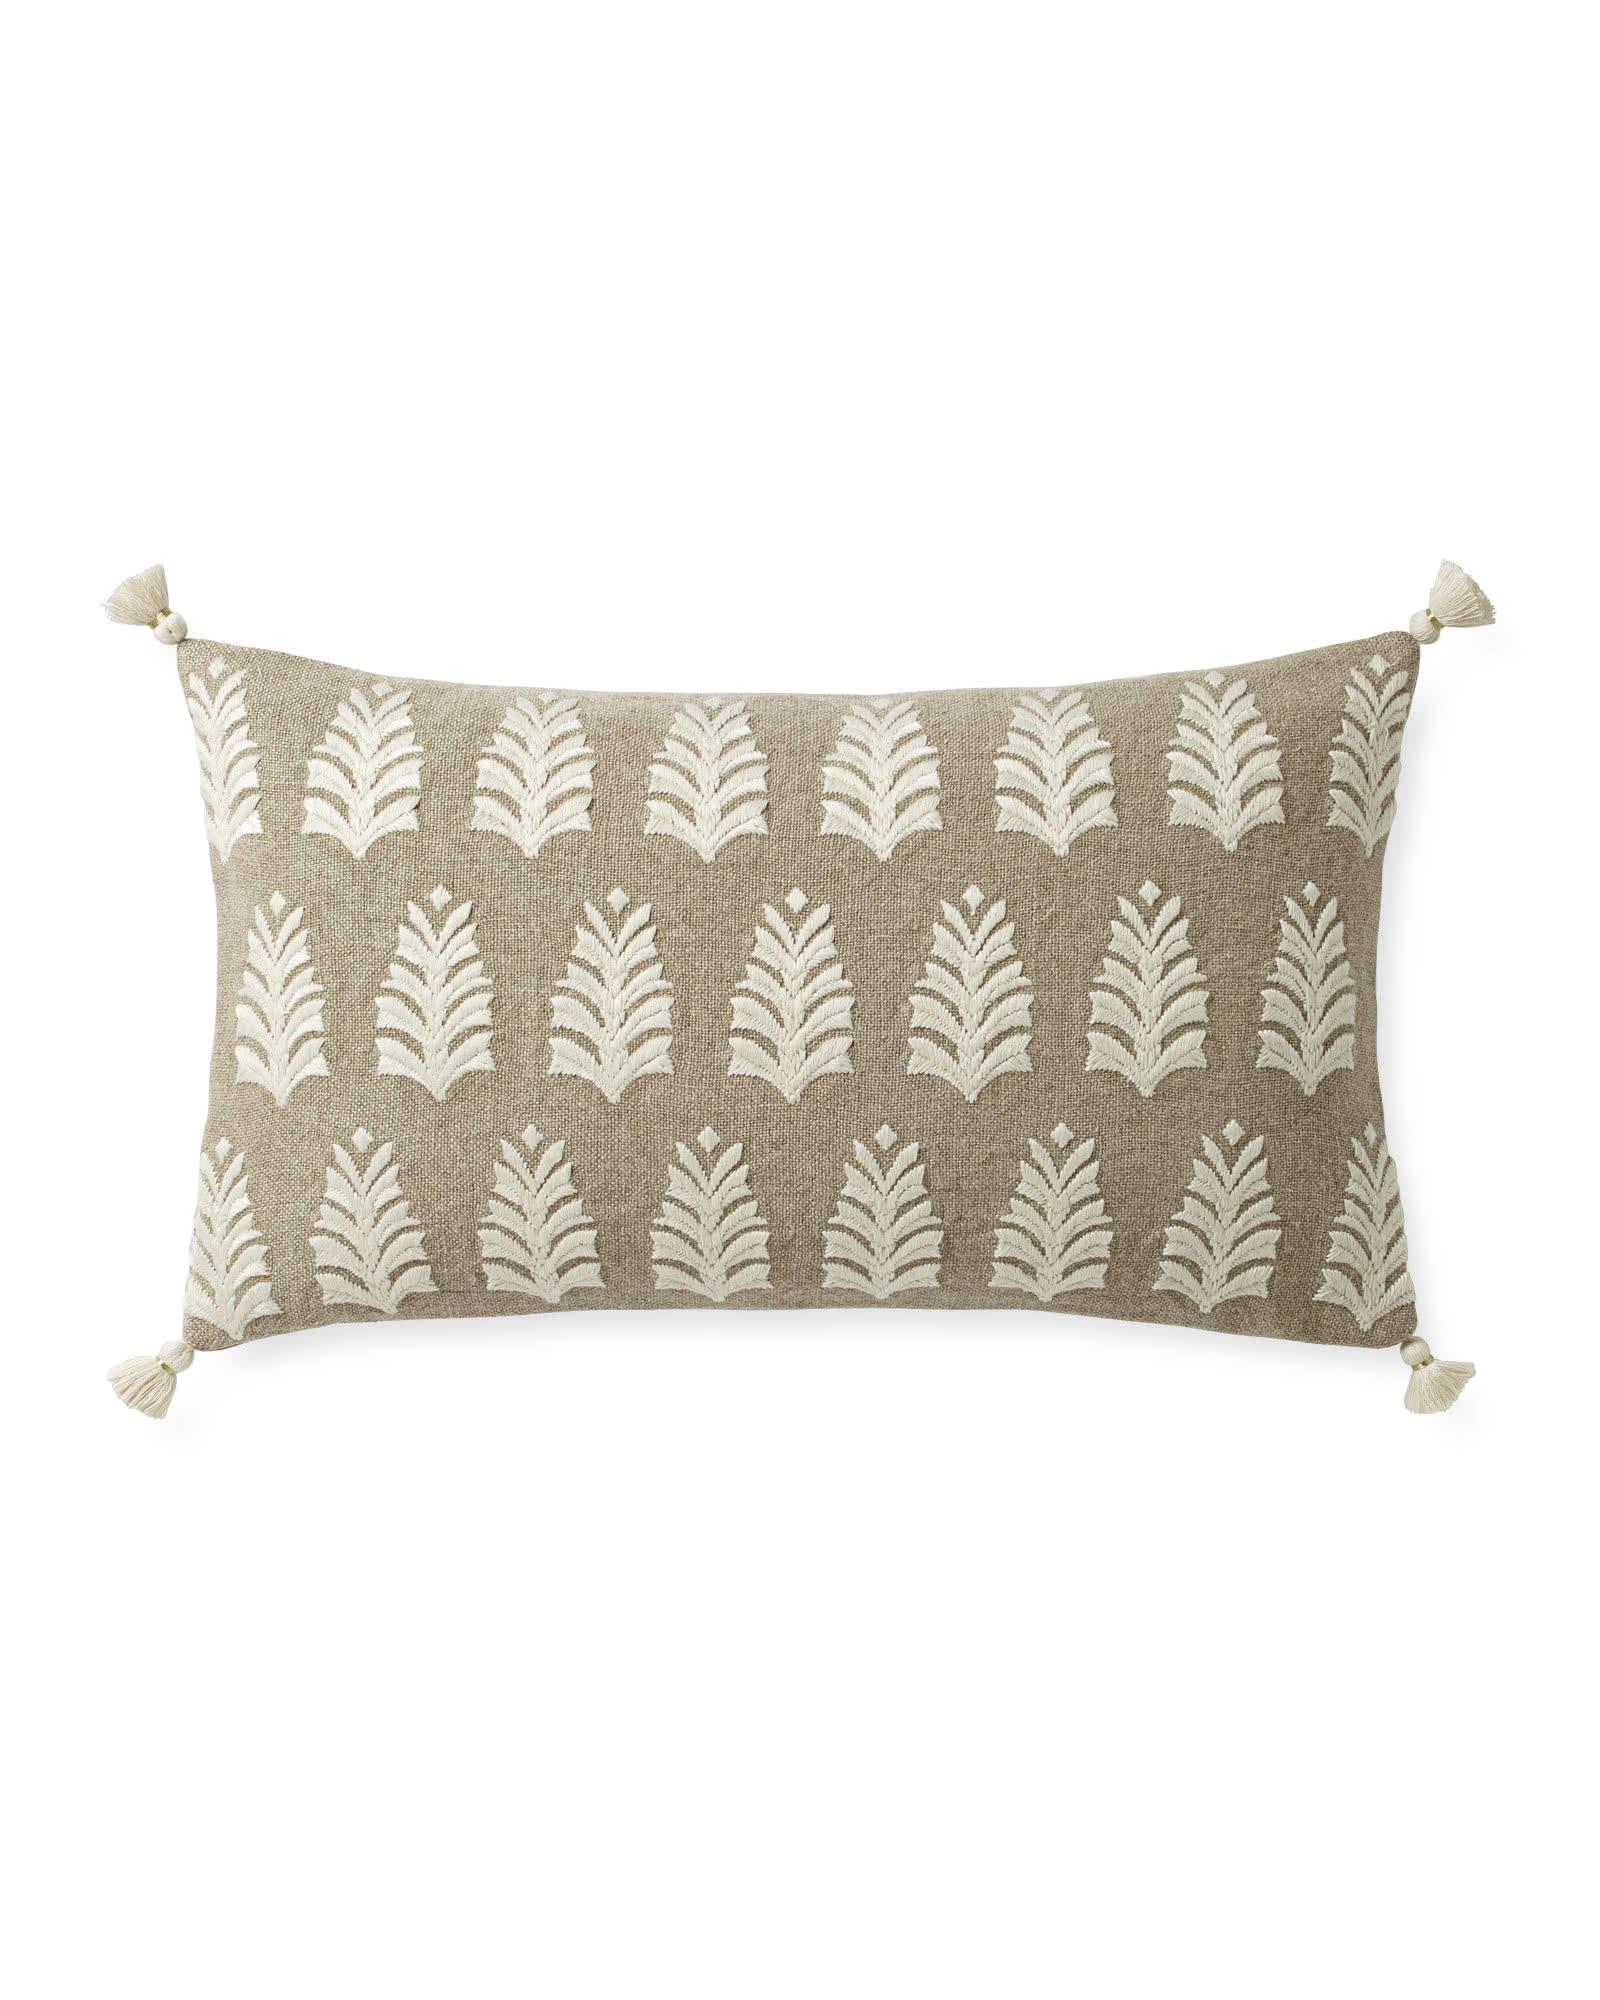 Whitley Embroidered Pillow Cover